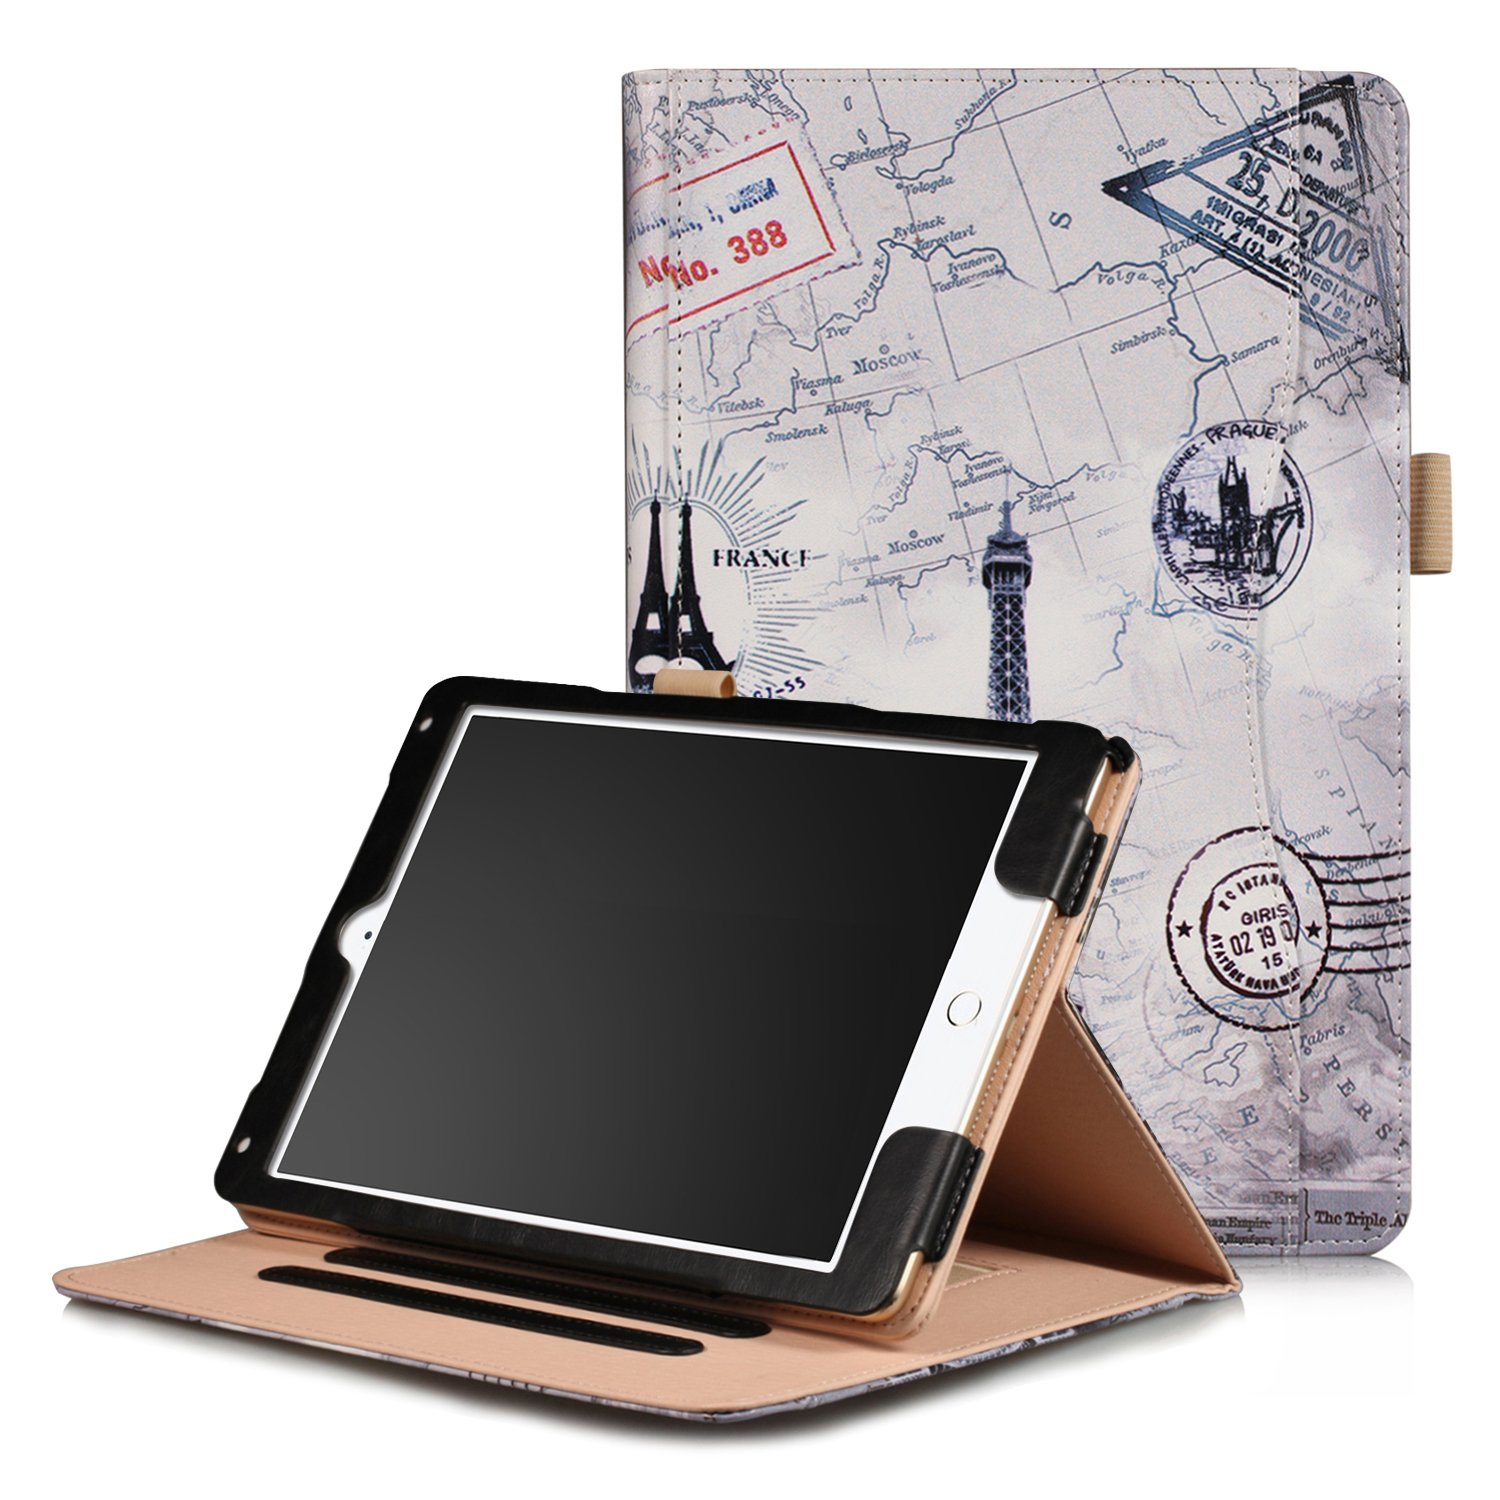 Proelite Smart Stand Case Cover For Apple Ipad 9 7 Air1 Air 2 Ipad 5th Gen Ipad 6th Gen A1822 A1823 A1893 A1954 Eiffel Buy Online In Congo Missing Category Value Products In